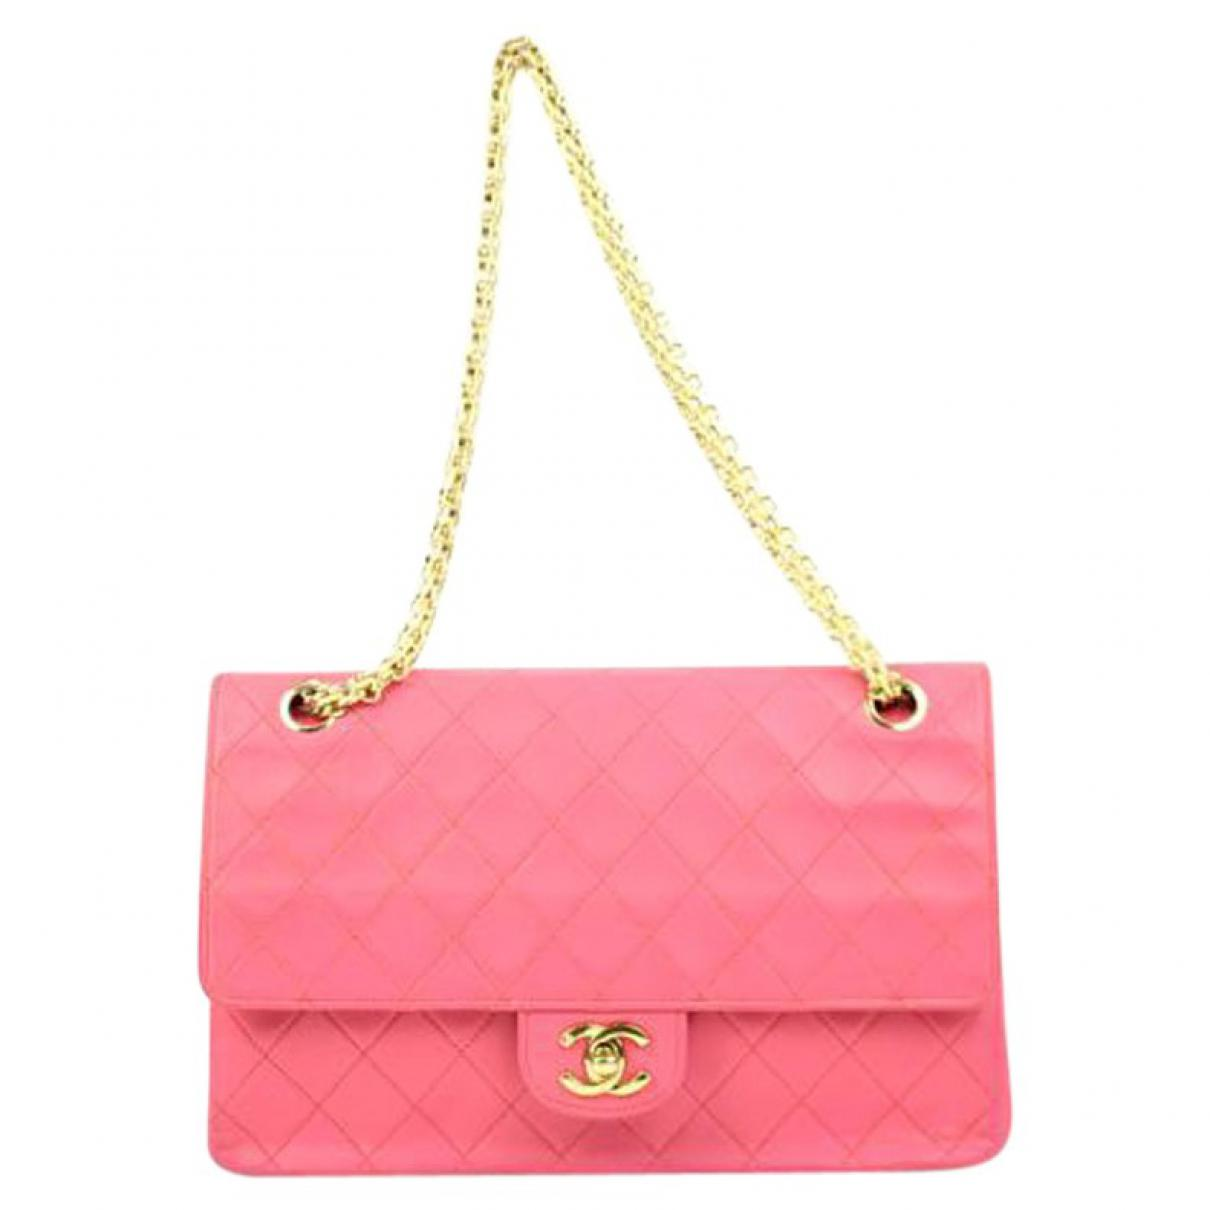 Chanel Women S Pink Pre Owned Handbag